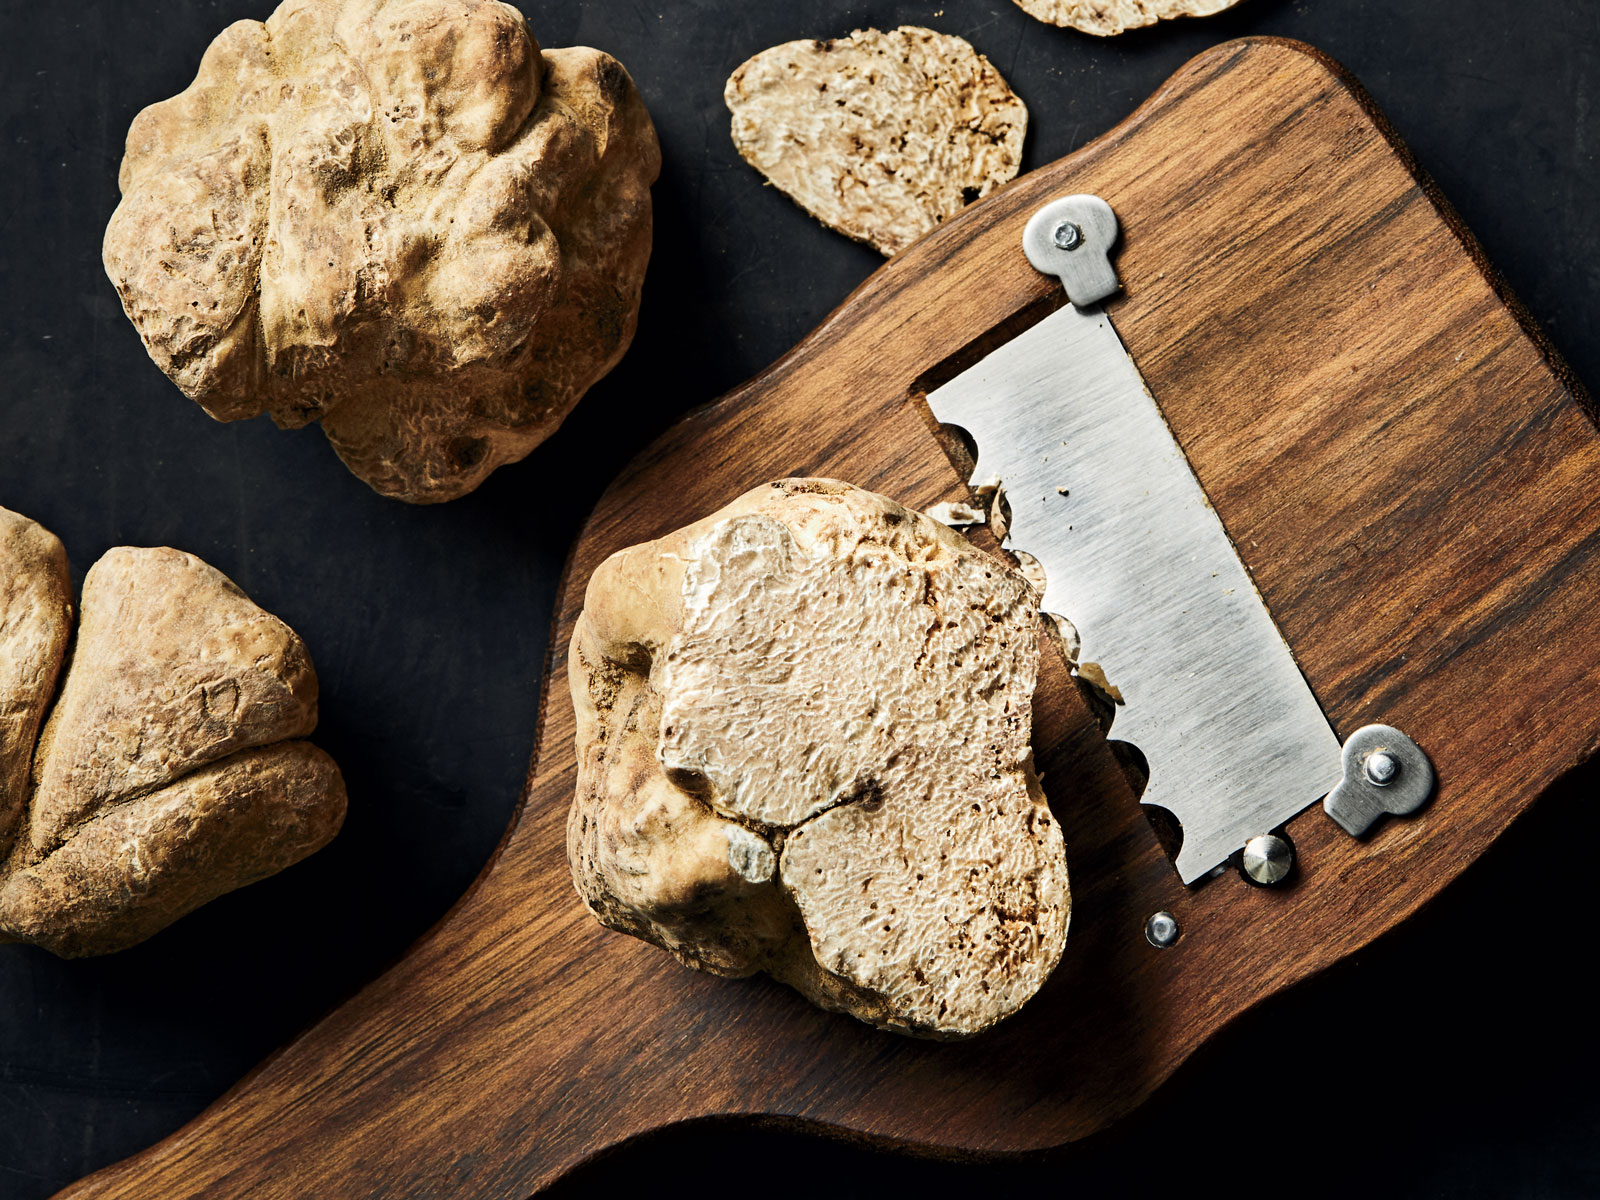 How White Truffle Season Marks the Most Wonderful Time of the Year